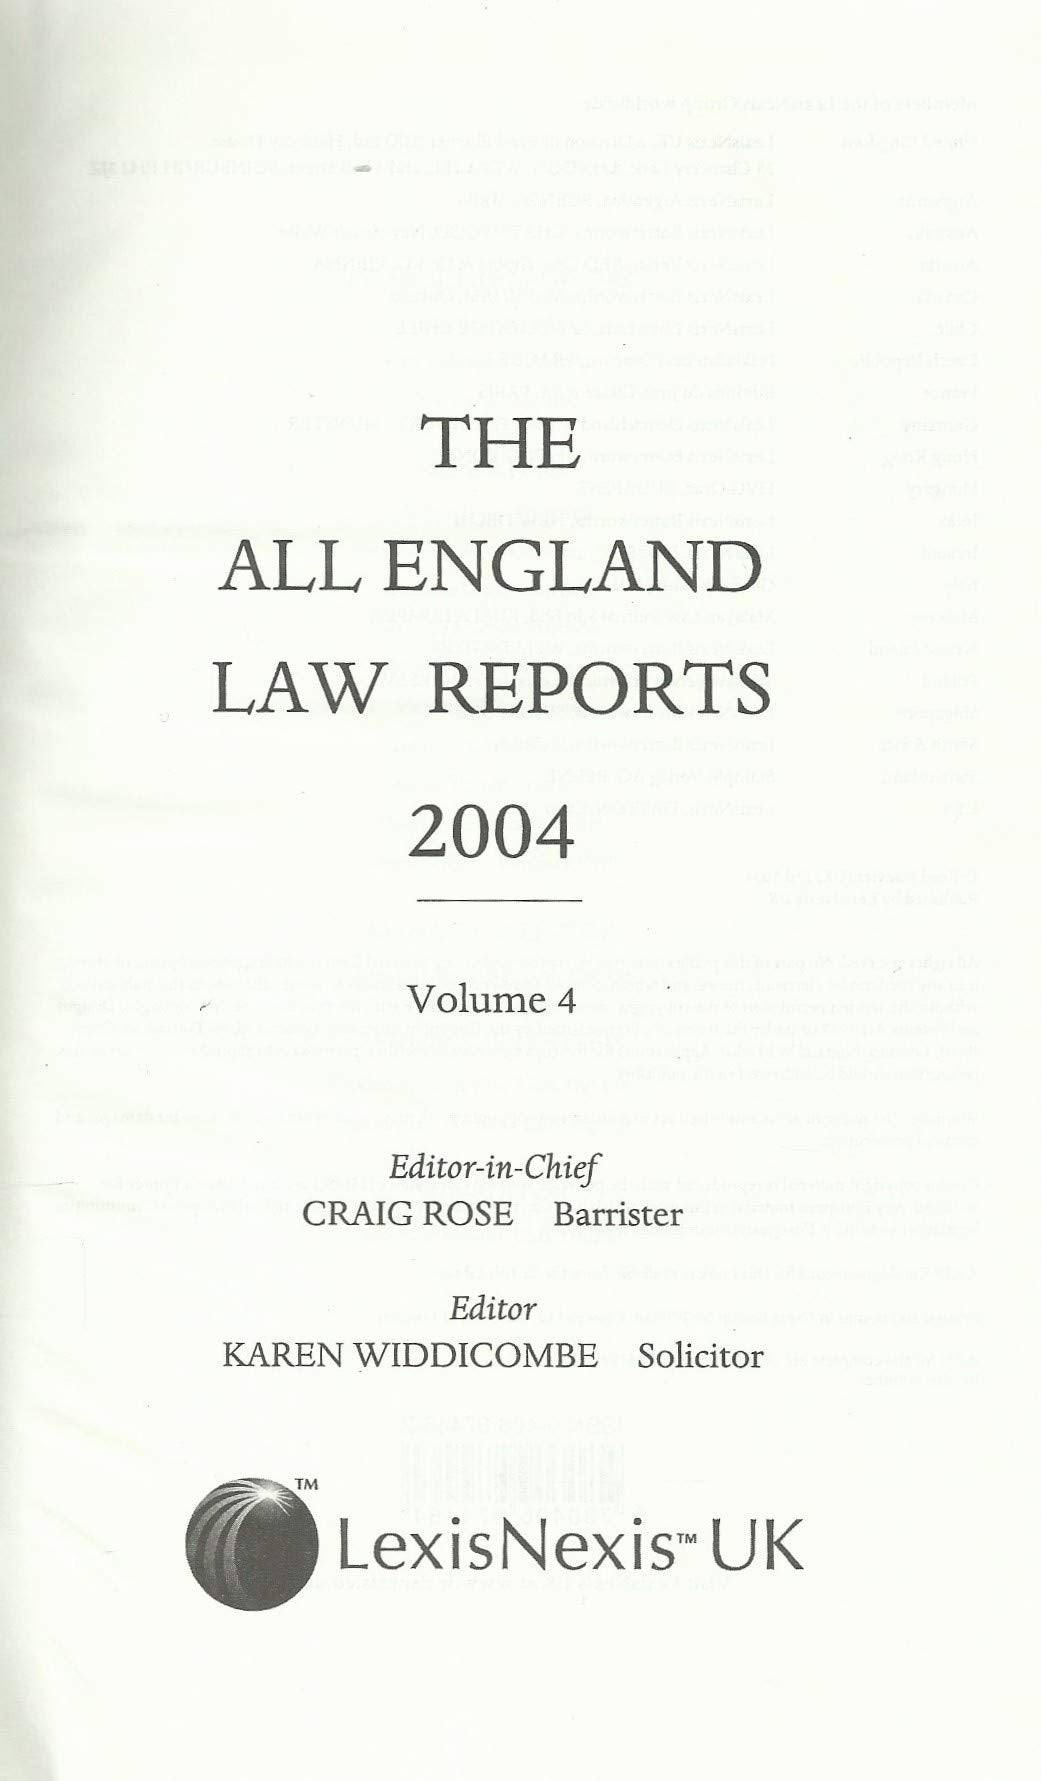 The All England Law Reports 2004, Volume 4